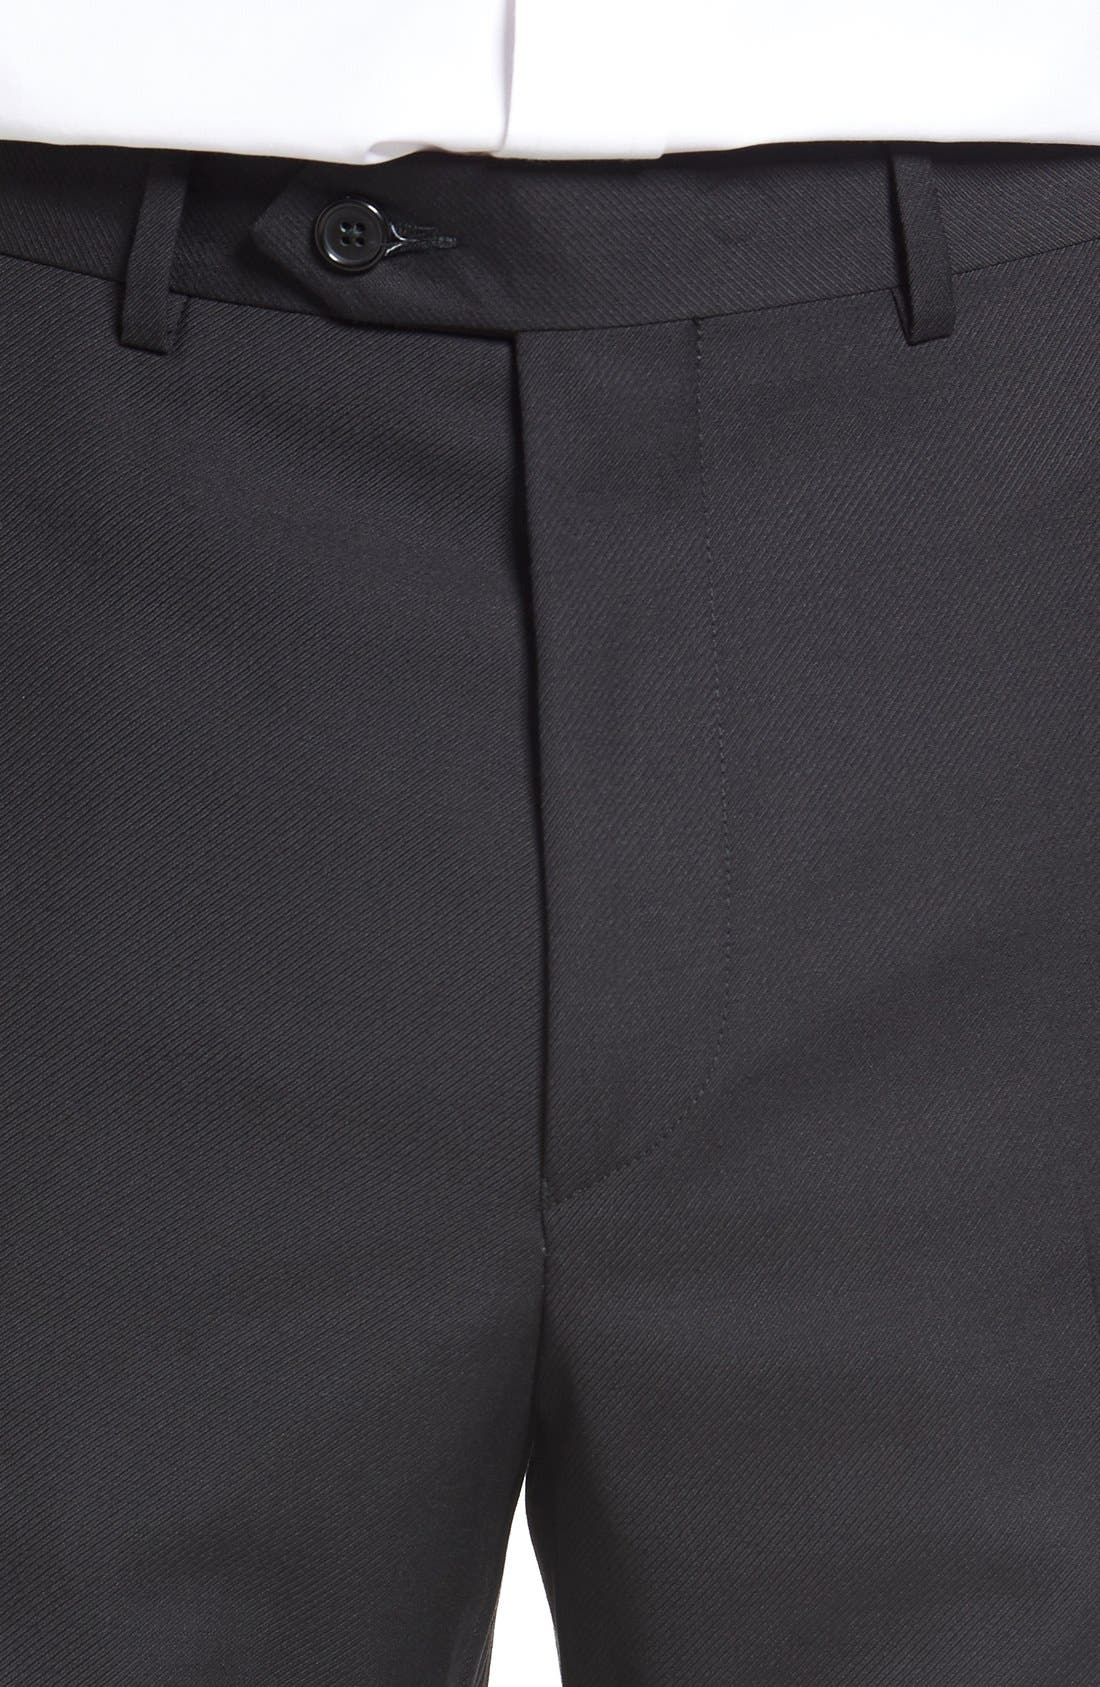 SANTORELLI, Flat Front Twill Wool Trousers, Alternate thumbnail 5, color, BLACK